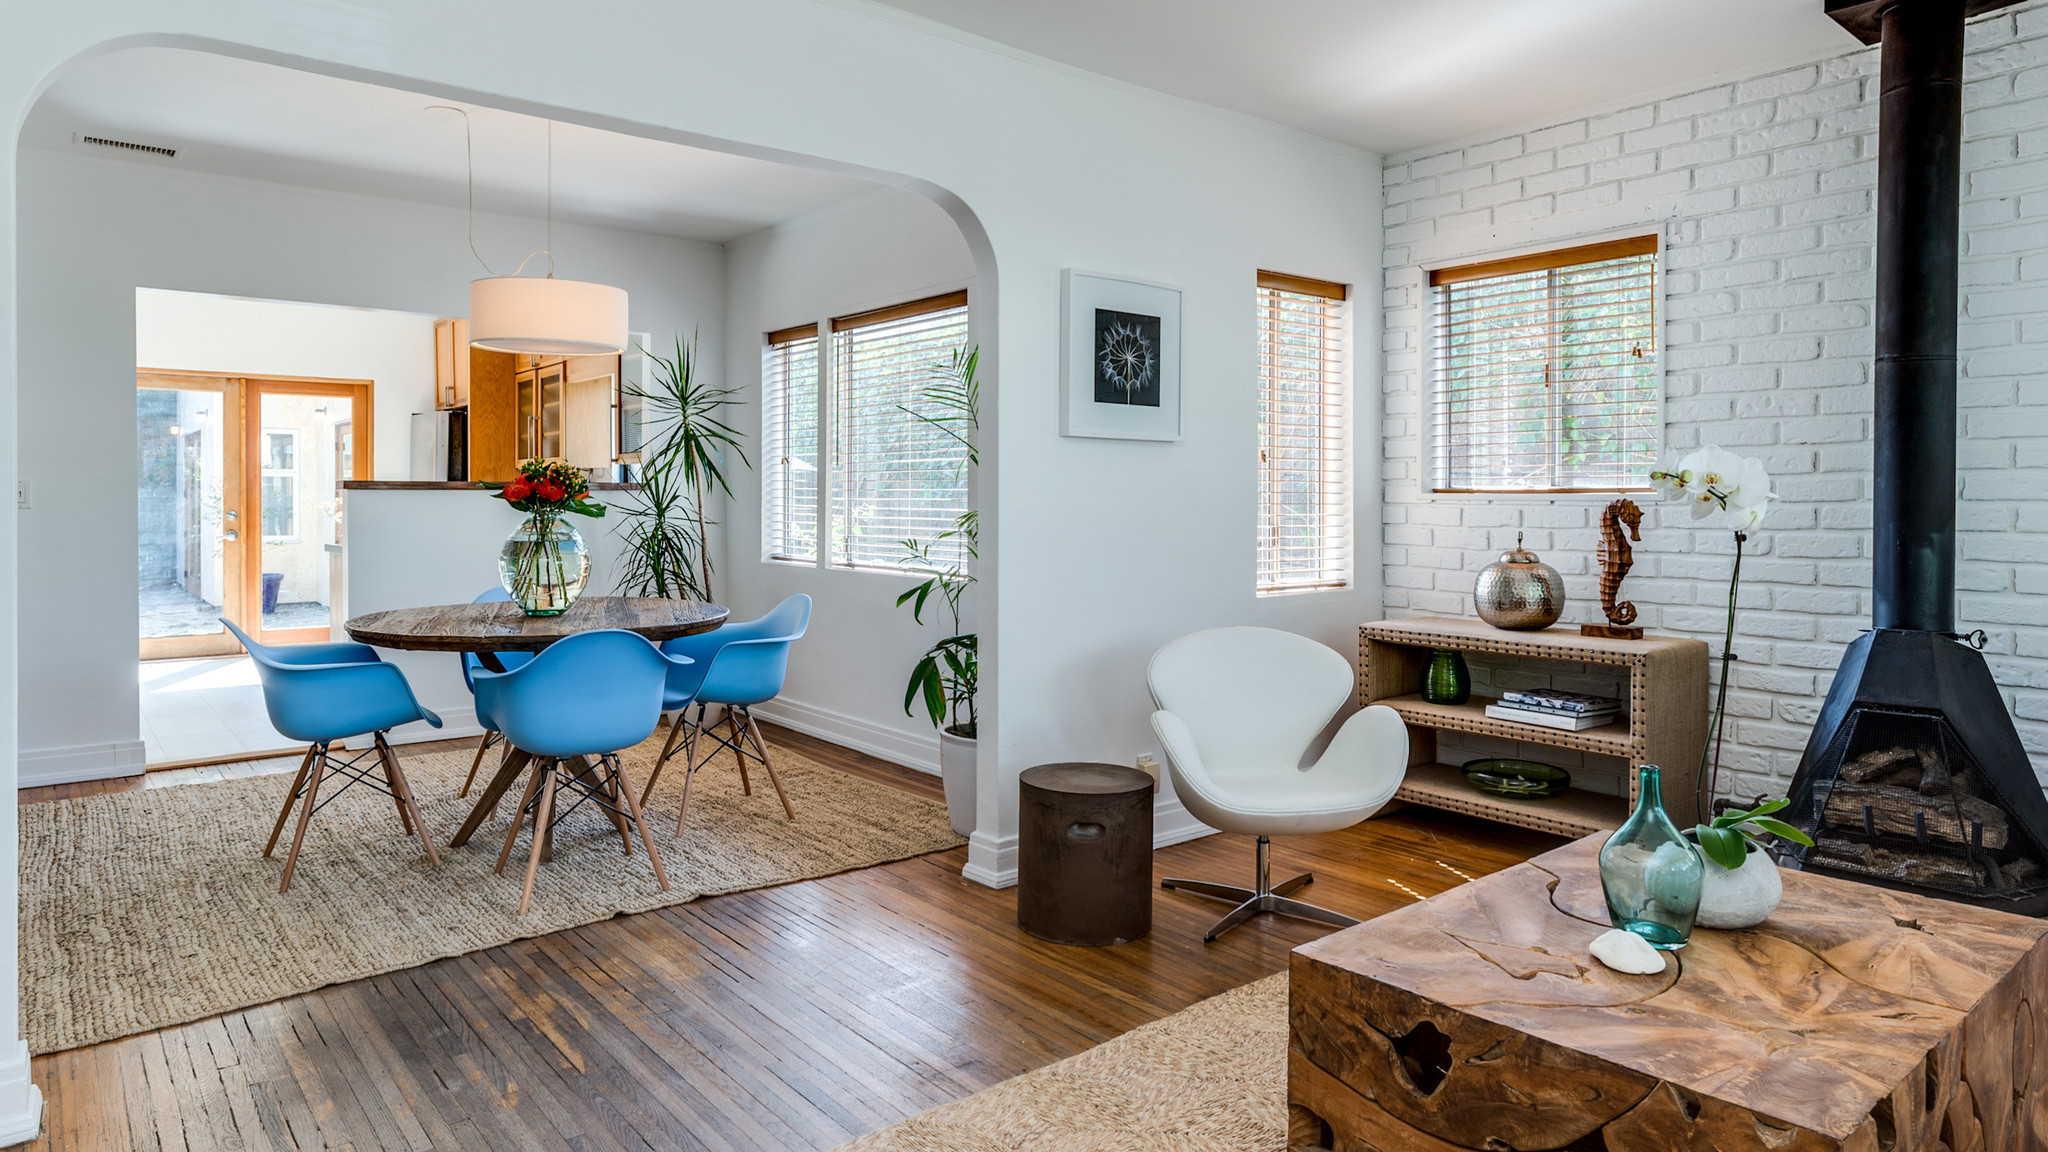 Home Of The Day Venice Beach Bungalow With Vintage Appeal